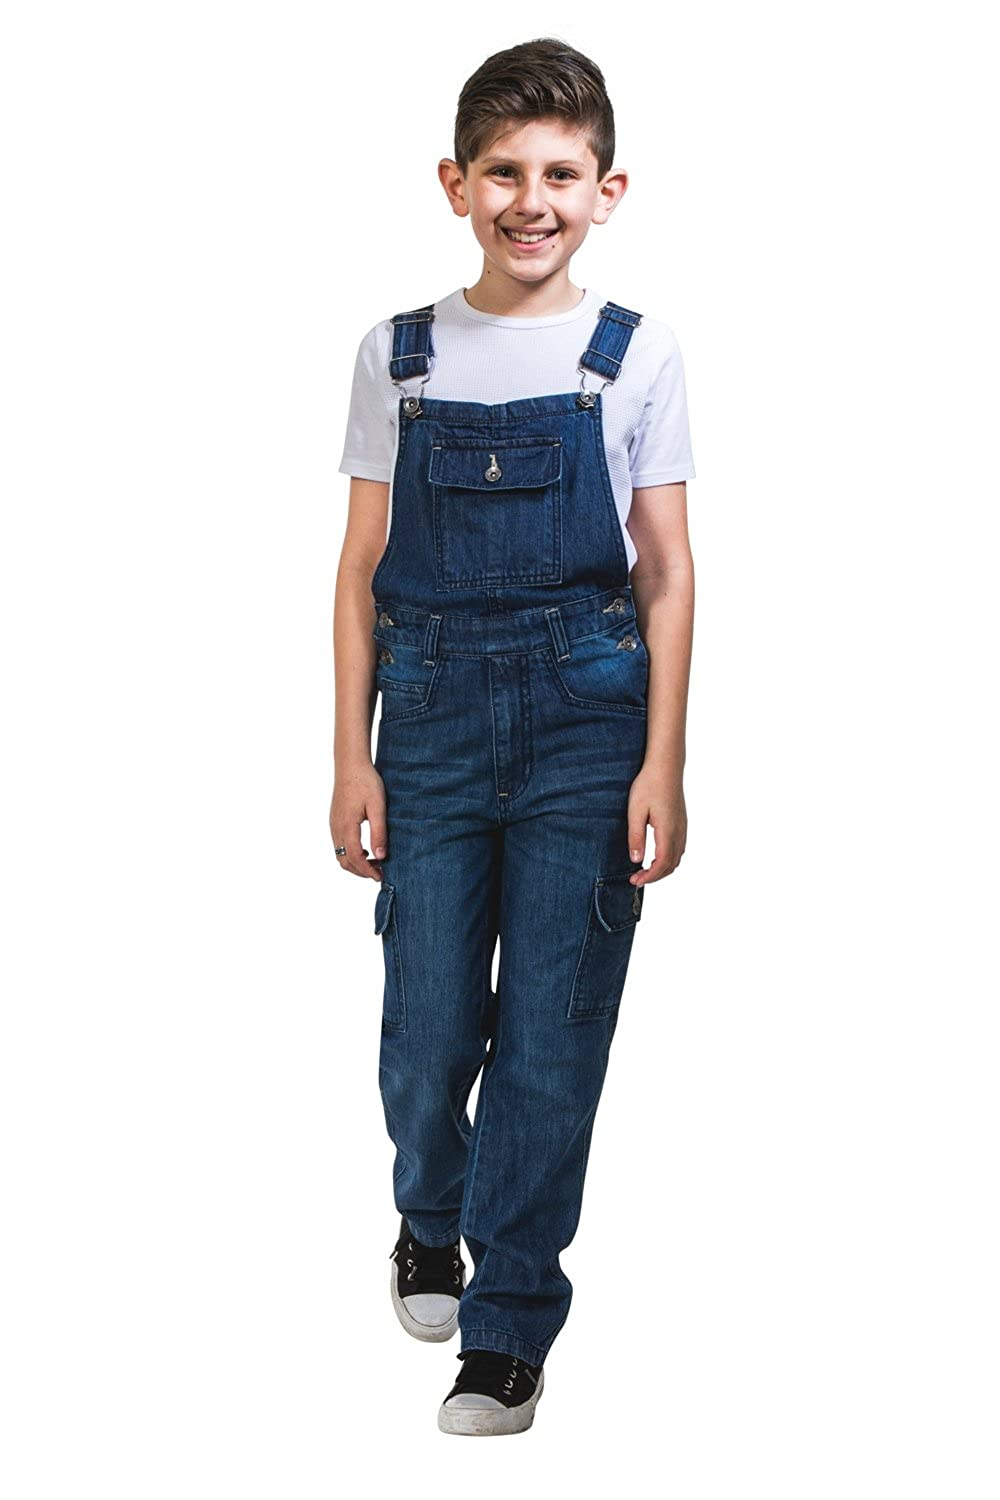 Uskees Kids Darkwash Denim Dungarees Age 4-14 Childrens Cargo Pocket Overalls BENJAMINDW